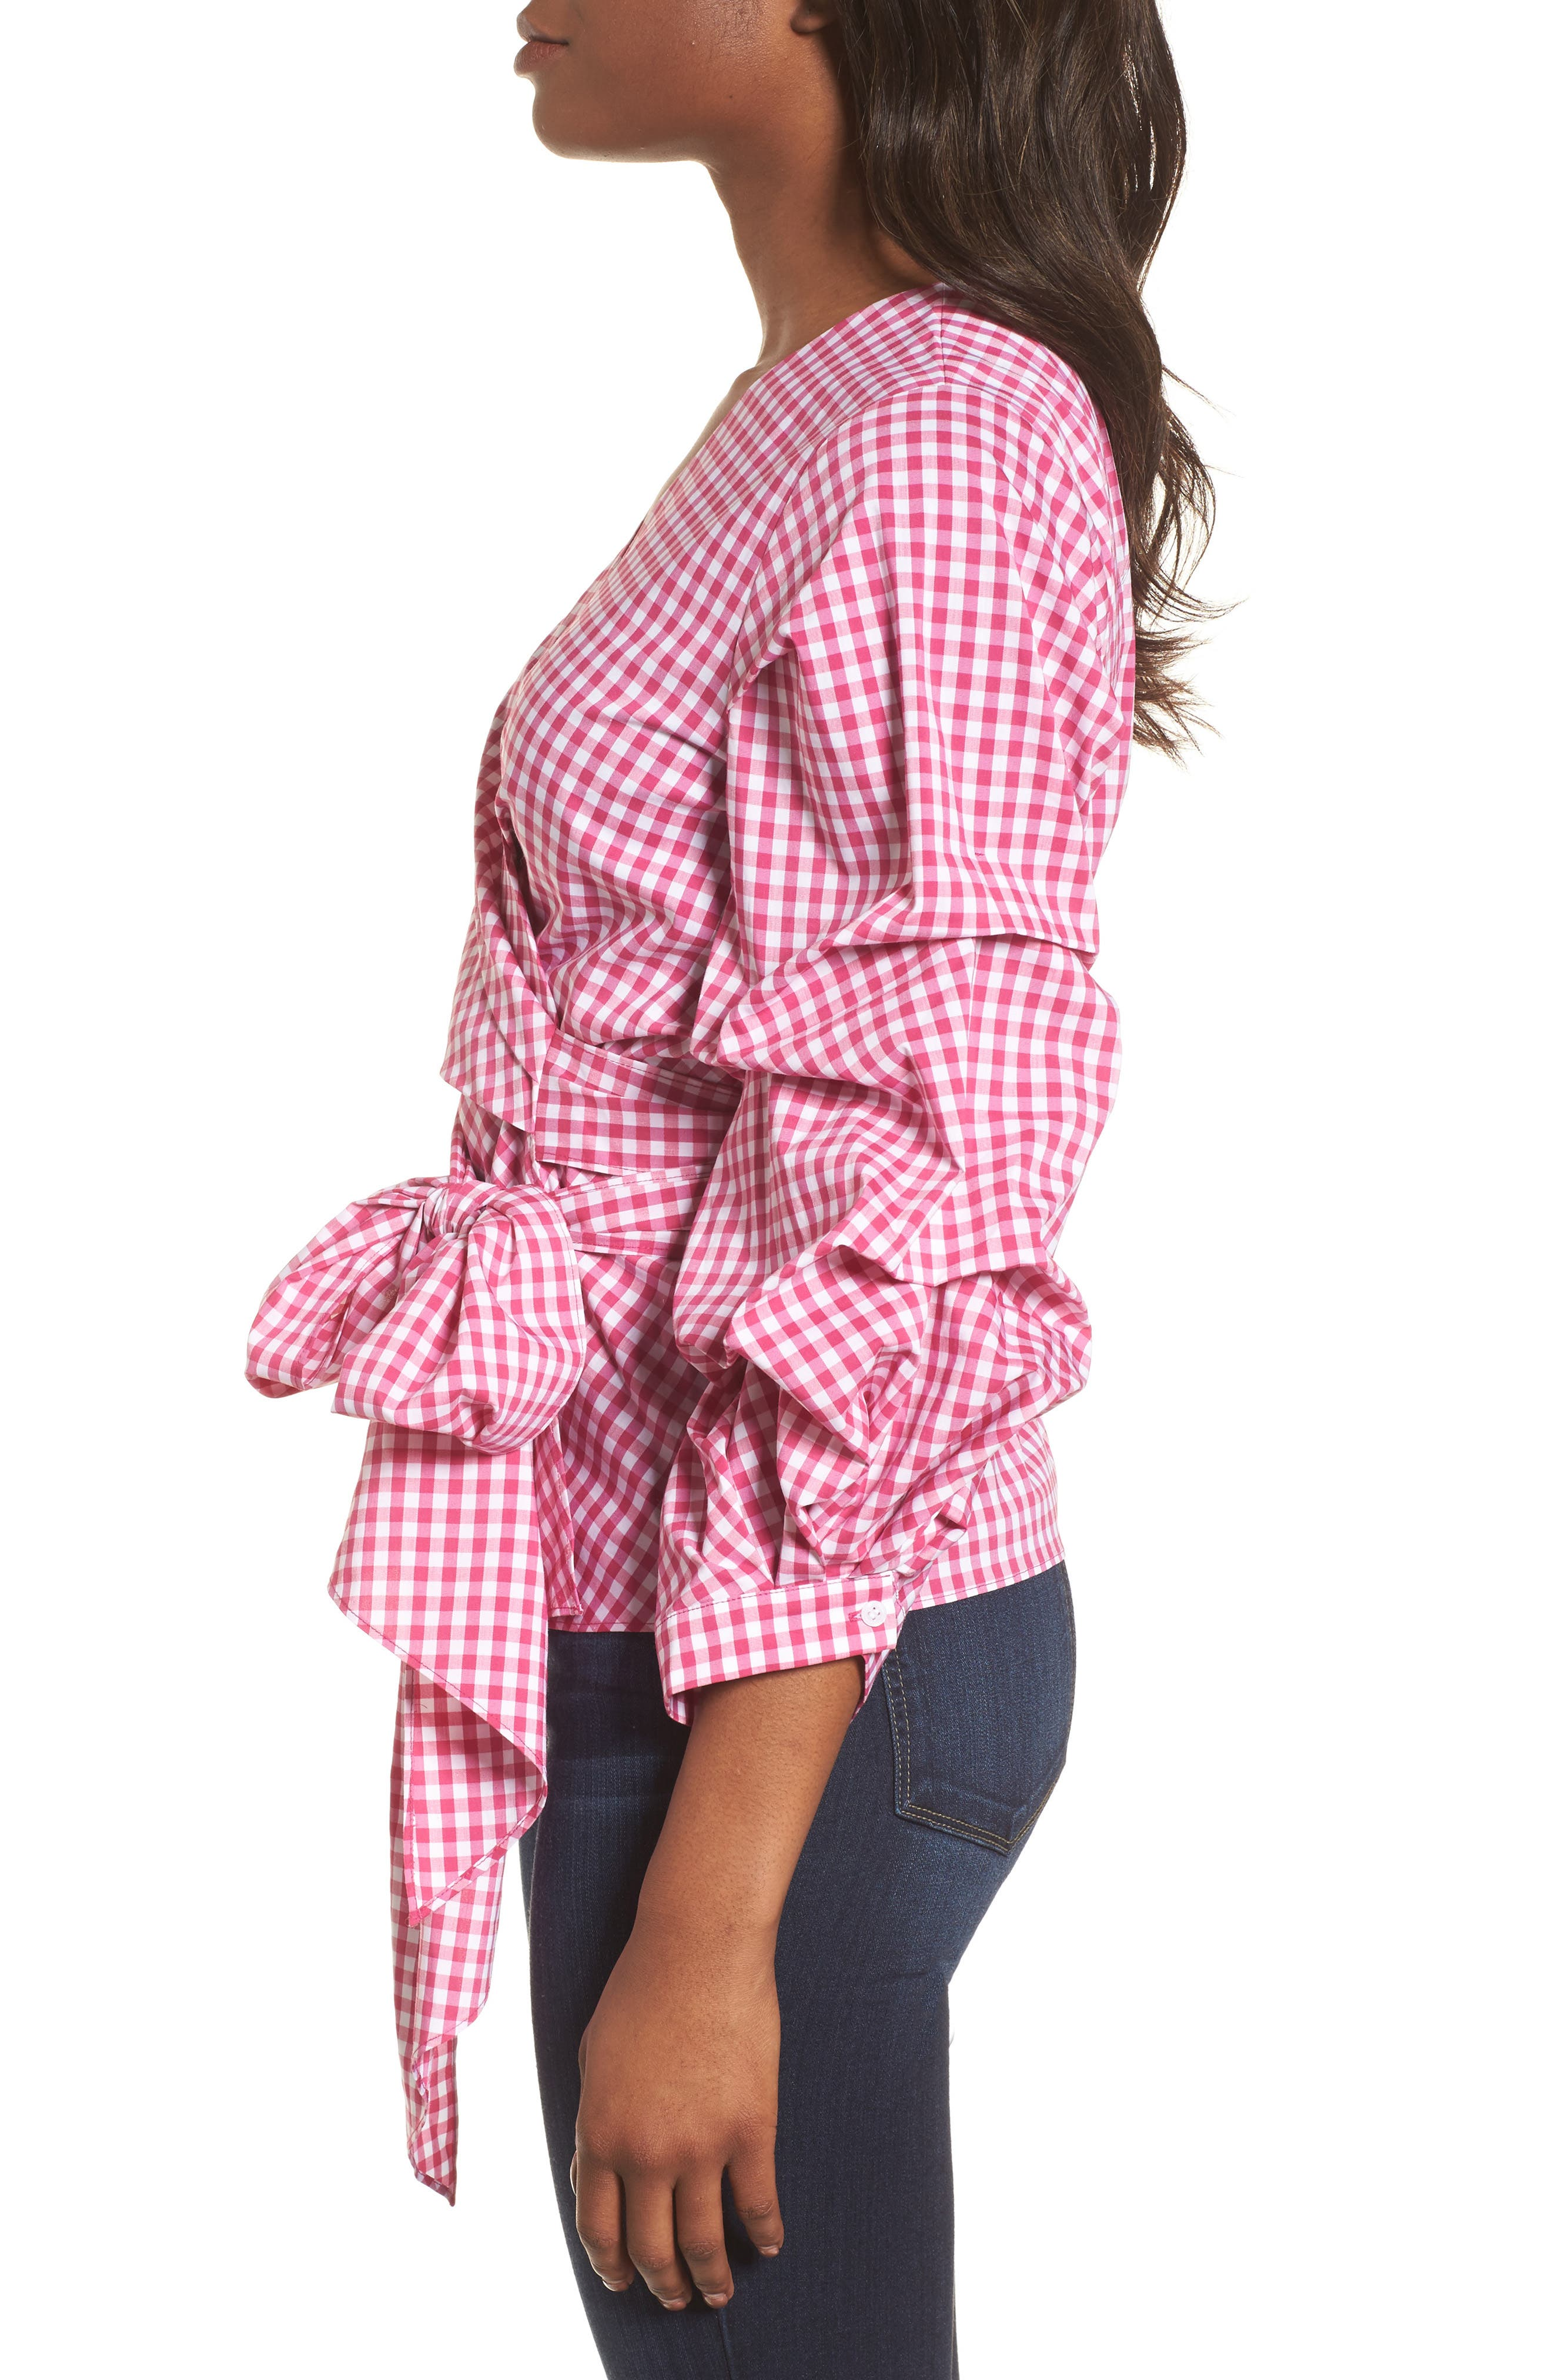 Pintuck Blouson Sleeve Wrap Top,                             Alternate thumbnail 3, color,                             Pink- White Gingham